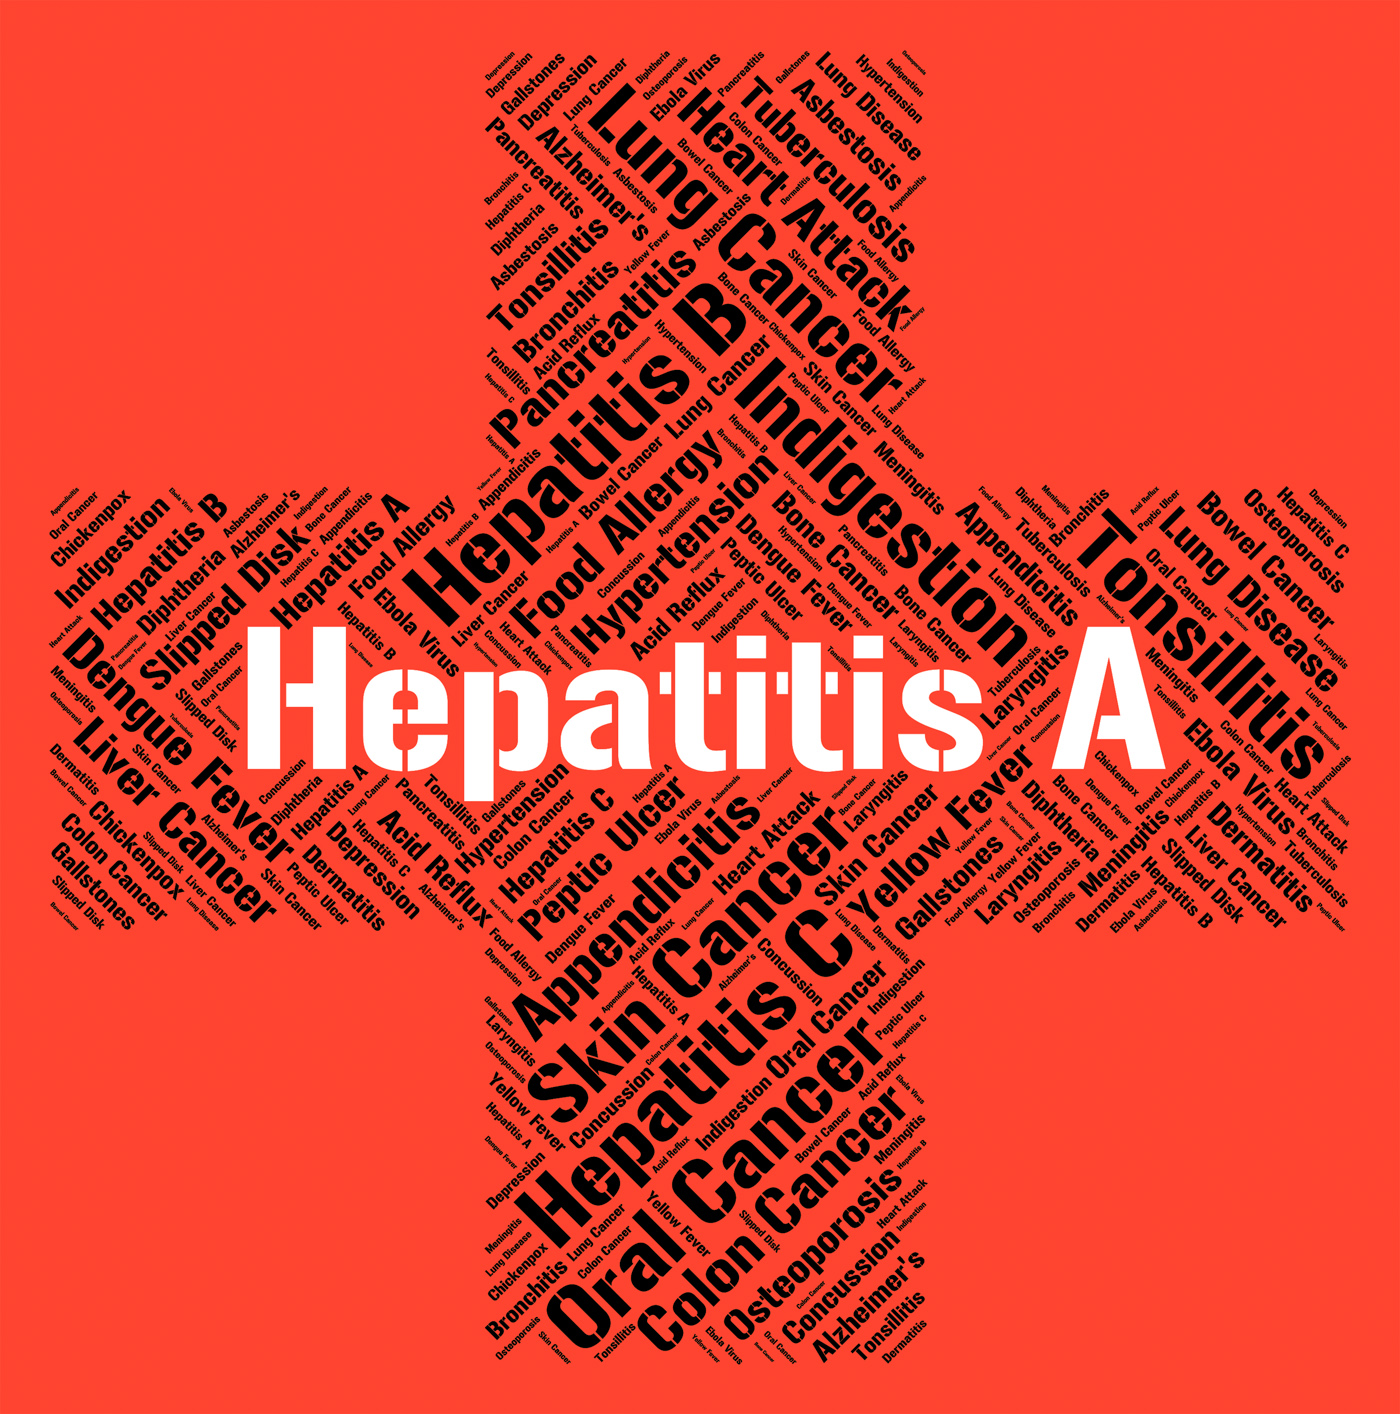 Hepatitis A Indicates Ill Health And Affliction, A, Inflammation, Indisposition, Infection, HQ Photo